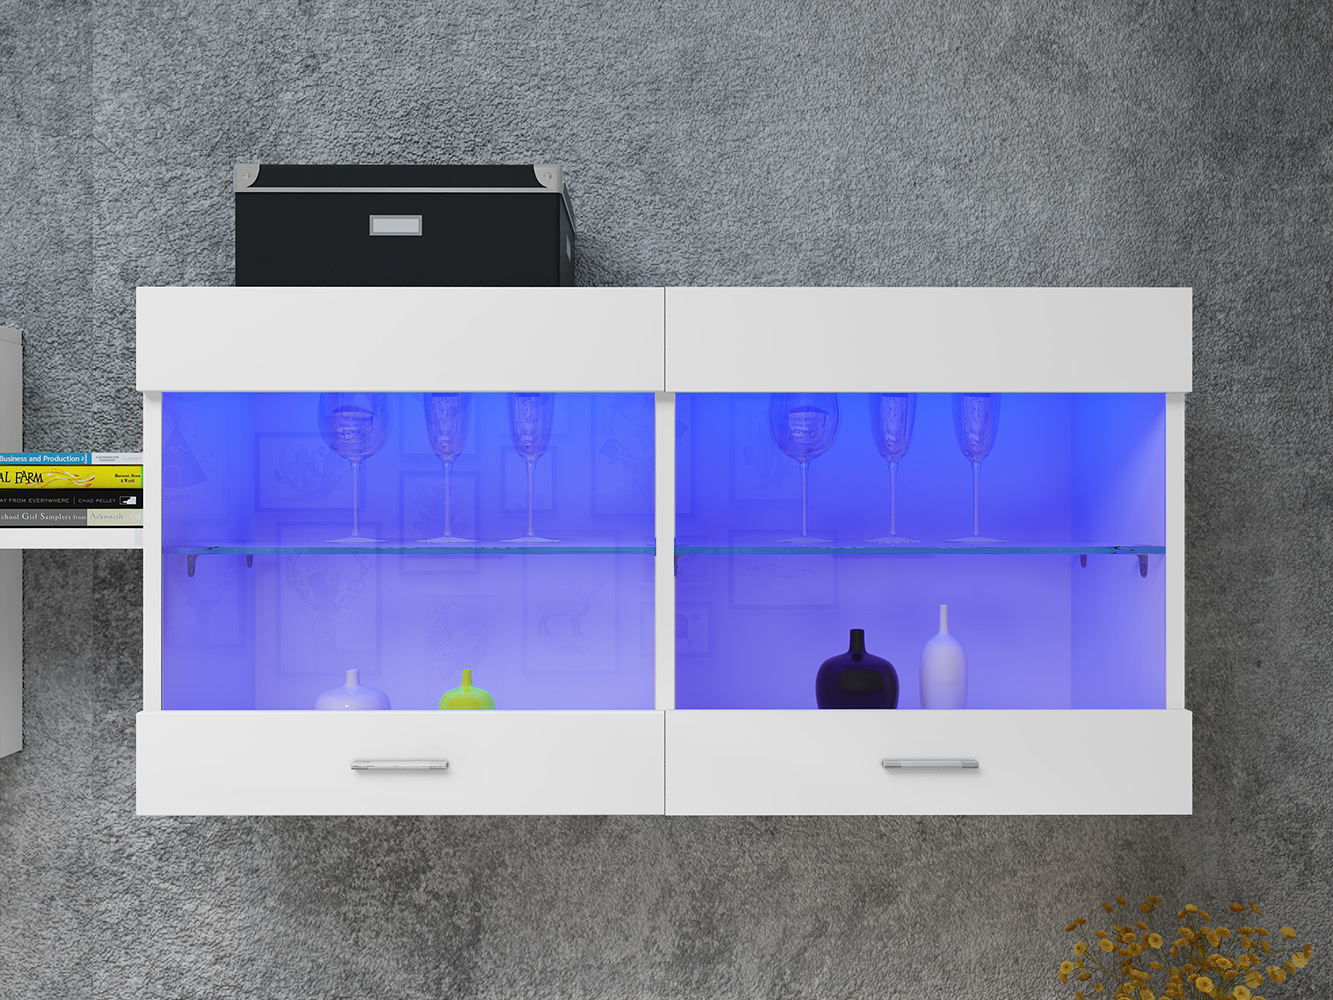 Panana LED Wall Display Cabinet Unit Glass Shelves Cupboard Storage Living Room TV Stand Head Wall-mounted Canbinet